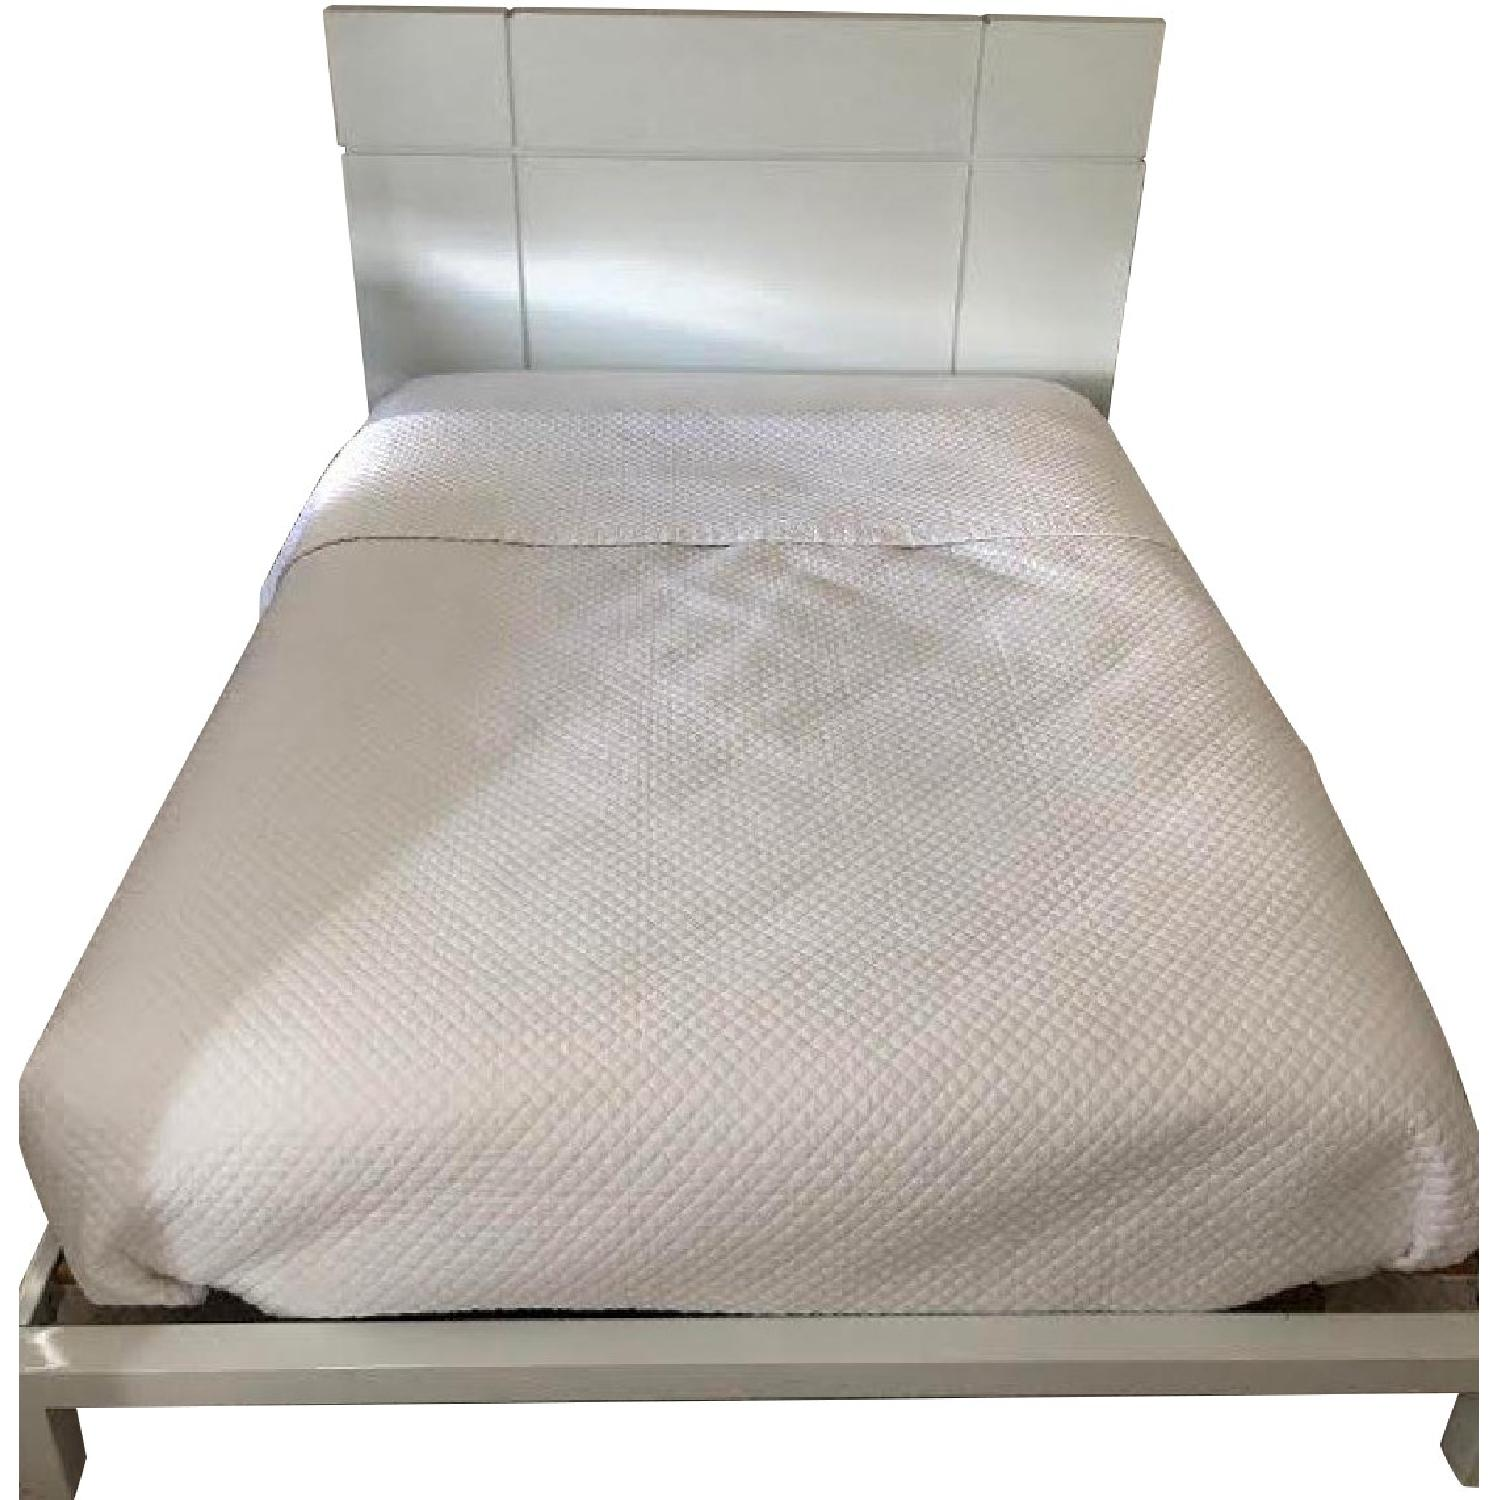 Crate & Barrel White Lacquer Bed